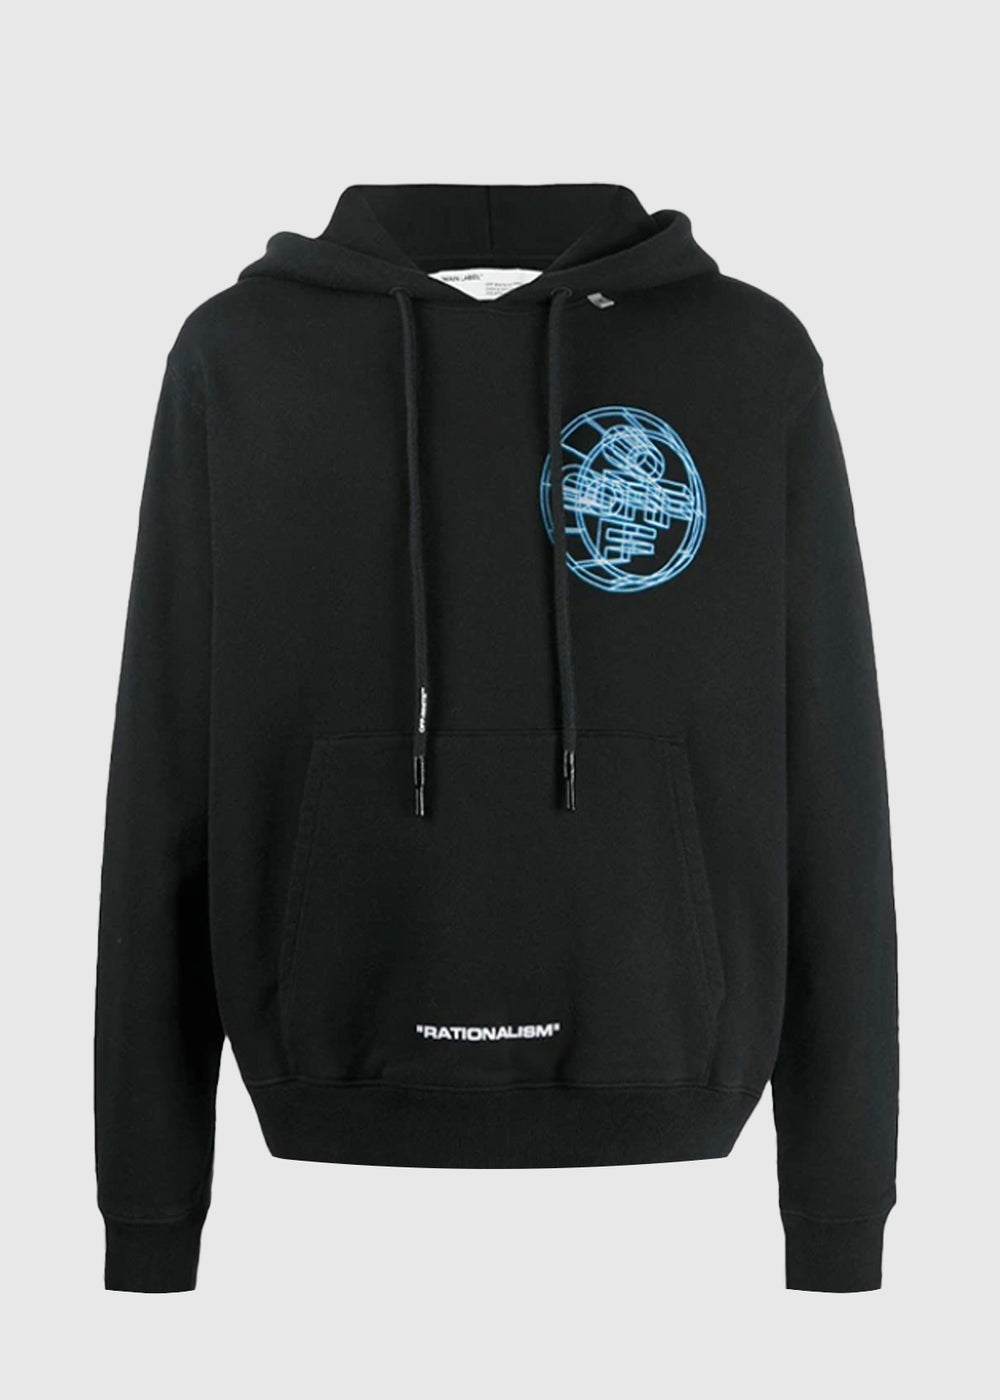 ow-3d-hoodie-ombb034r20e300031088-blk-multi-1